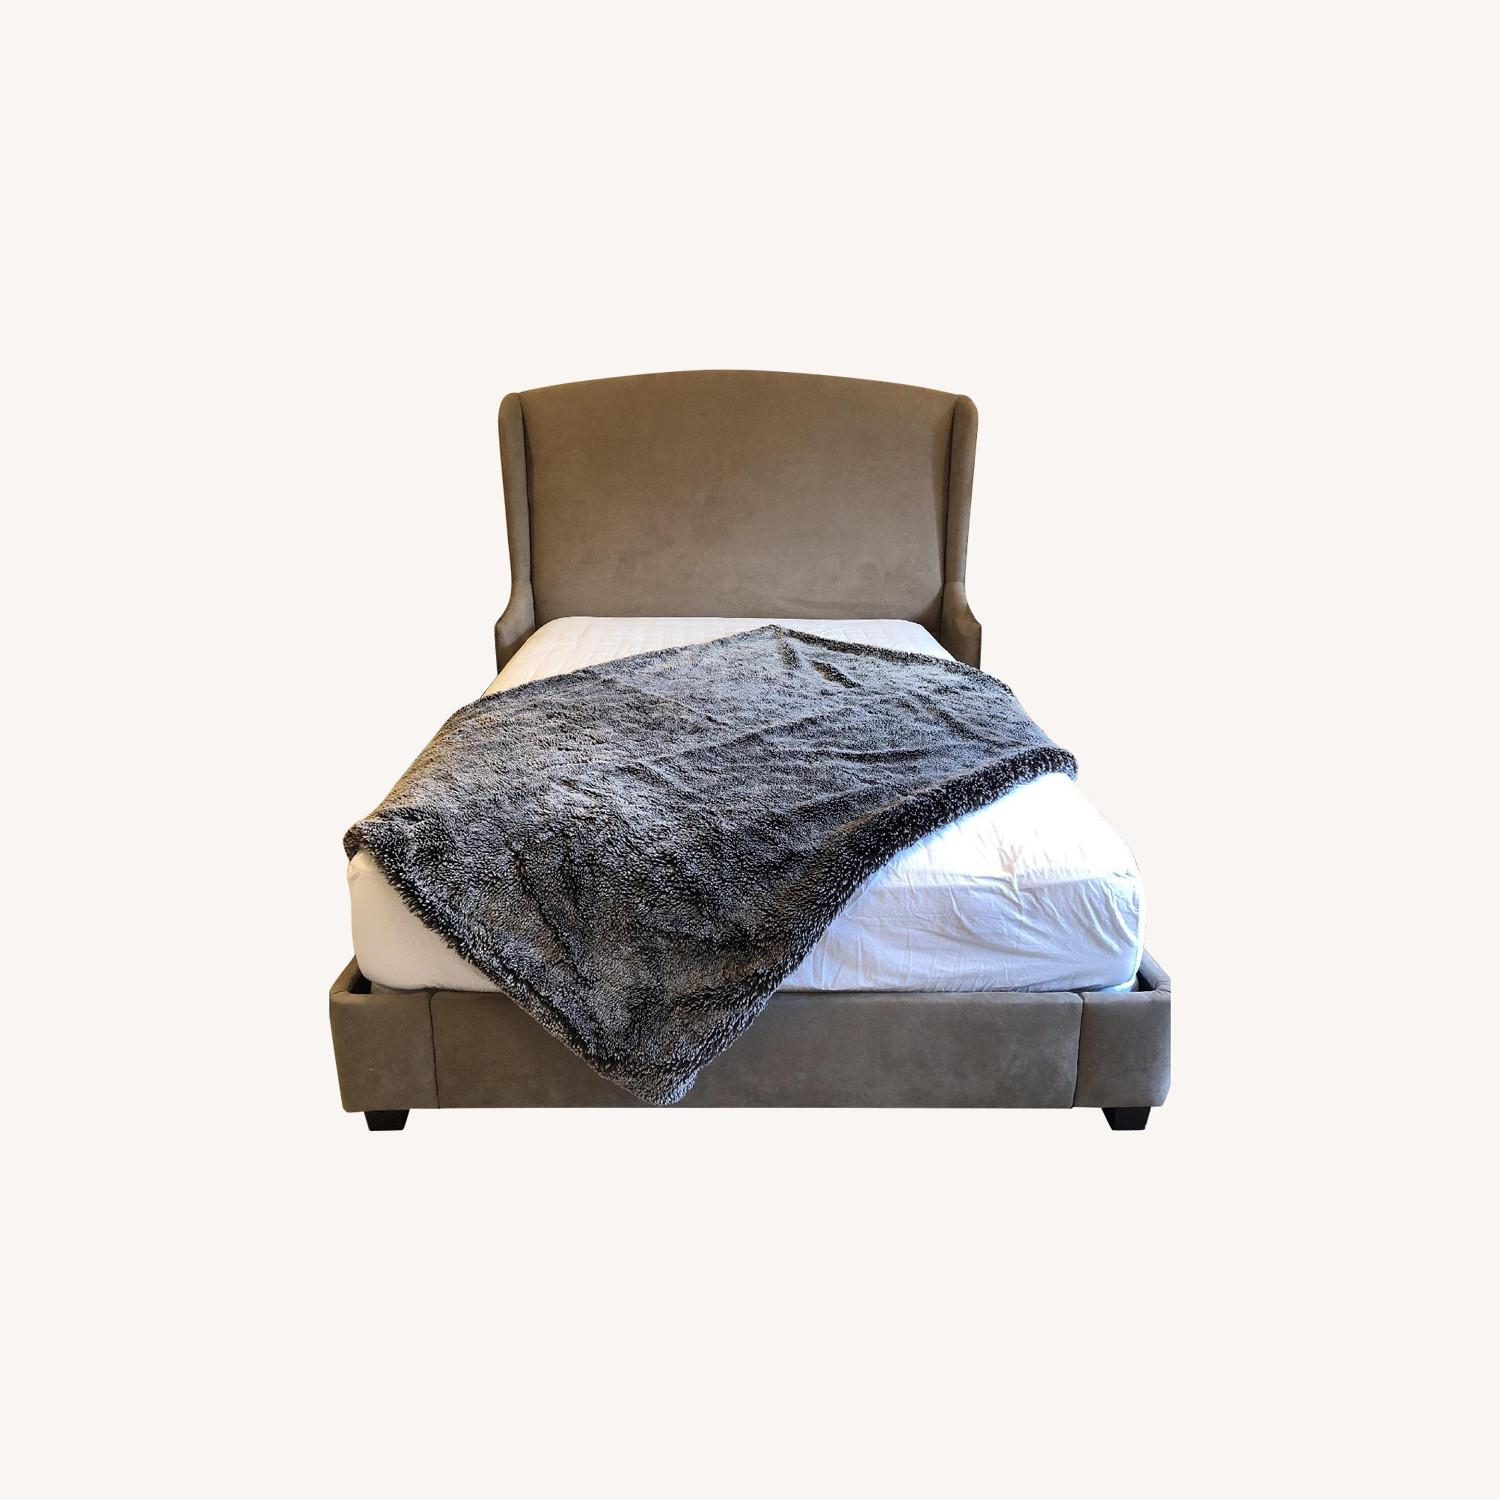 Modern Queen Size Bed - image-0